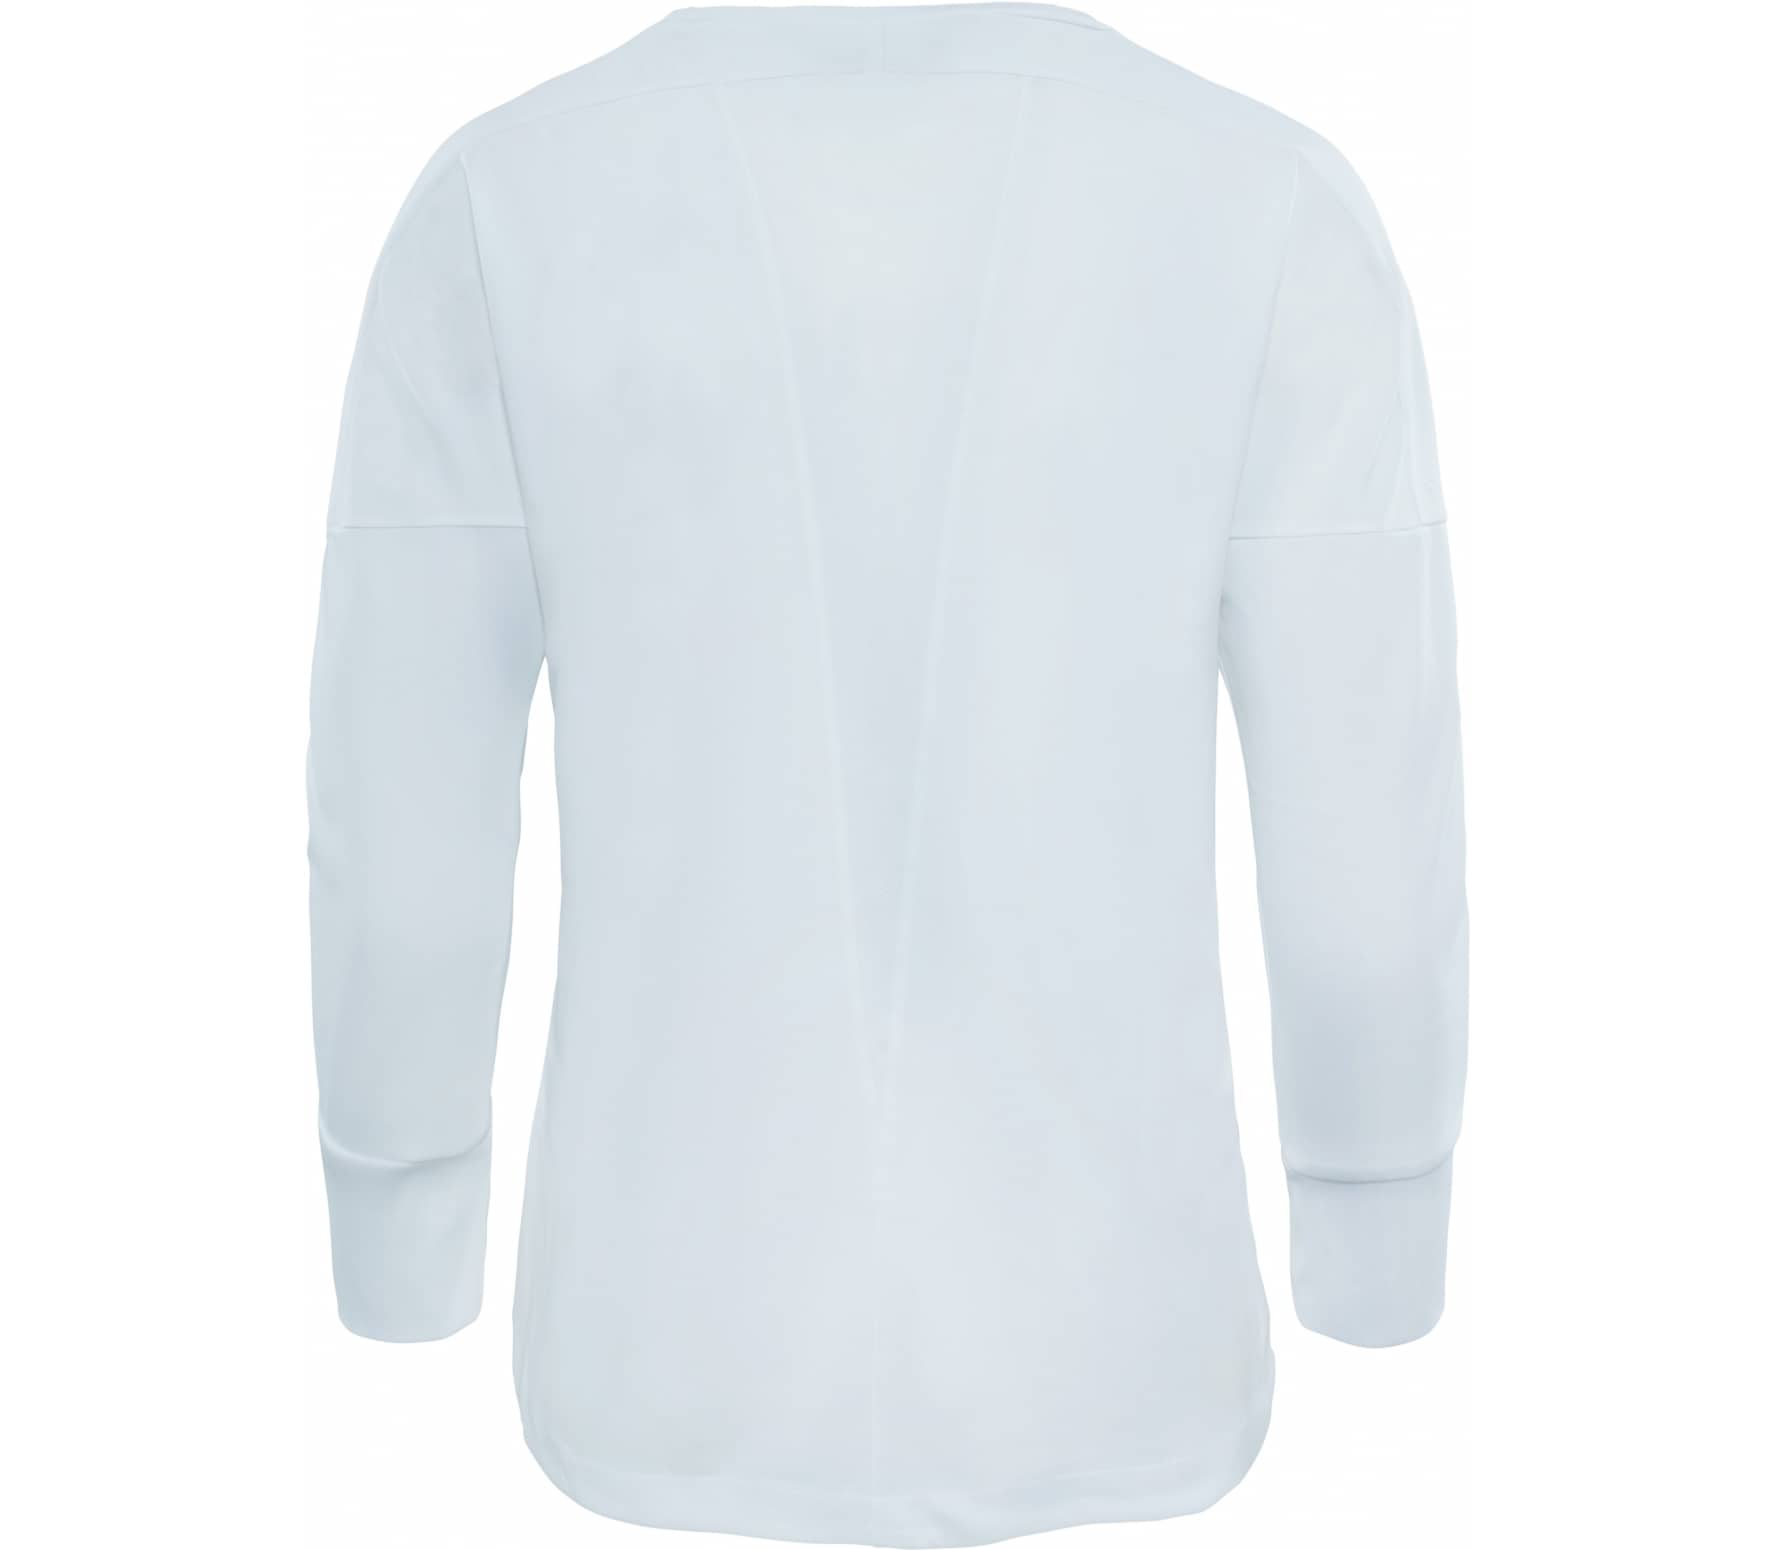 06deac8de09d27 The North Face - Inlux women s functional top (white) - buy it at ...